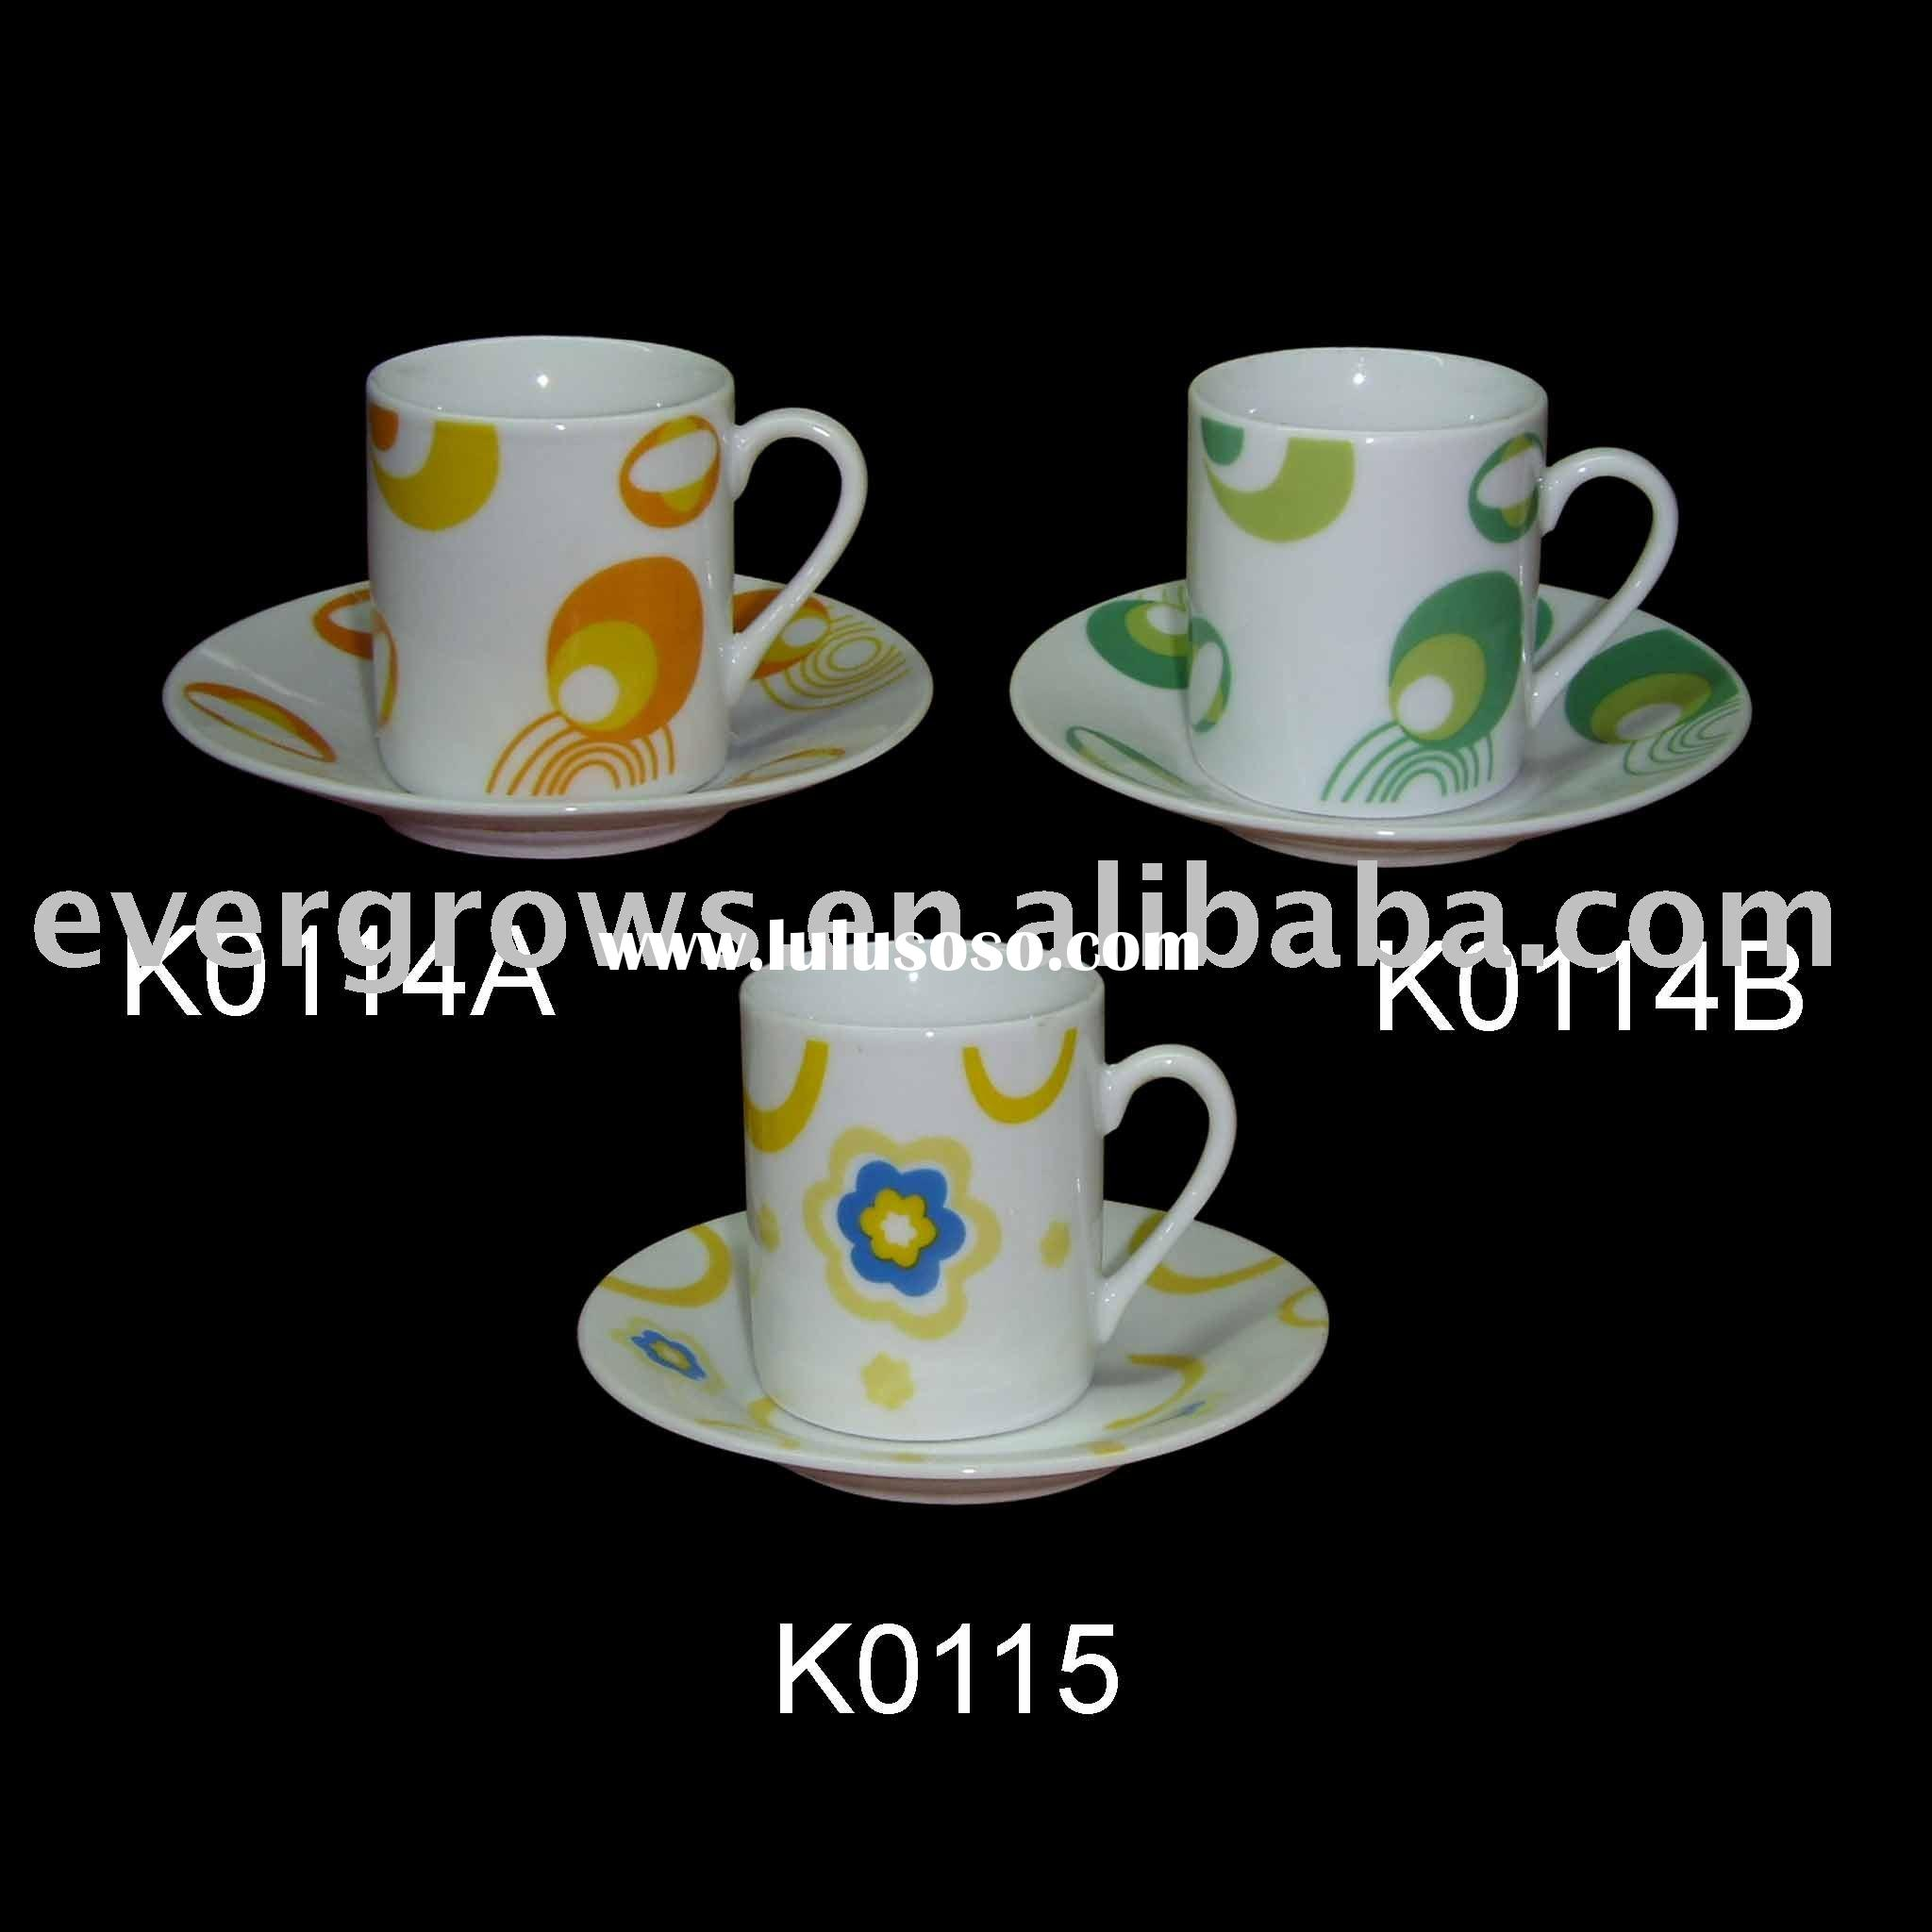 80cc espresso cup and saucer